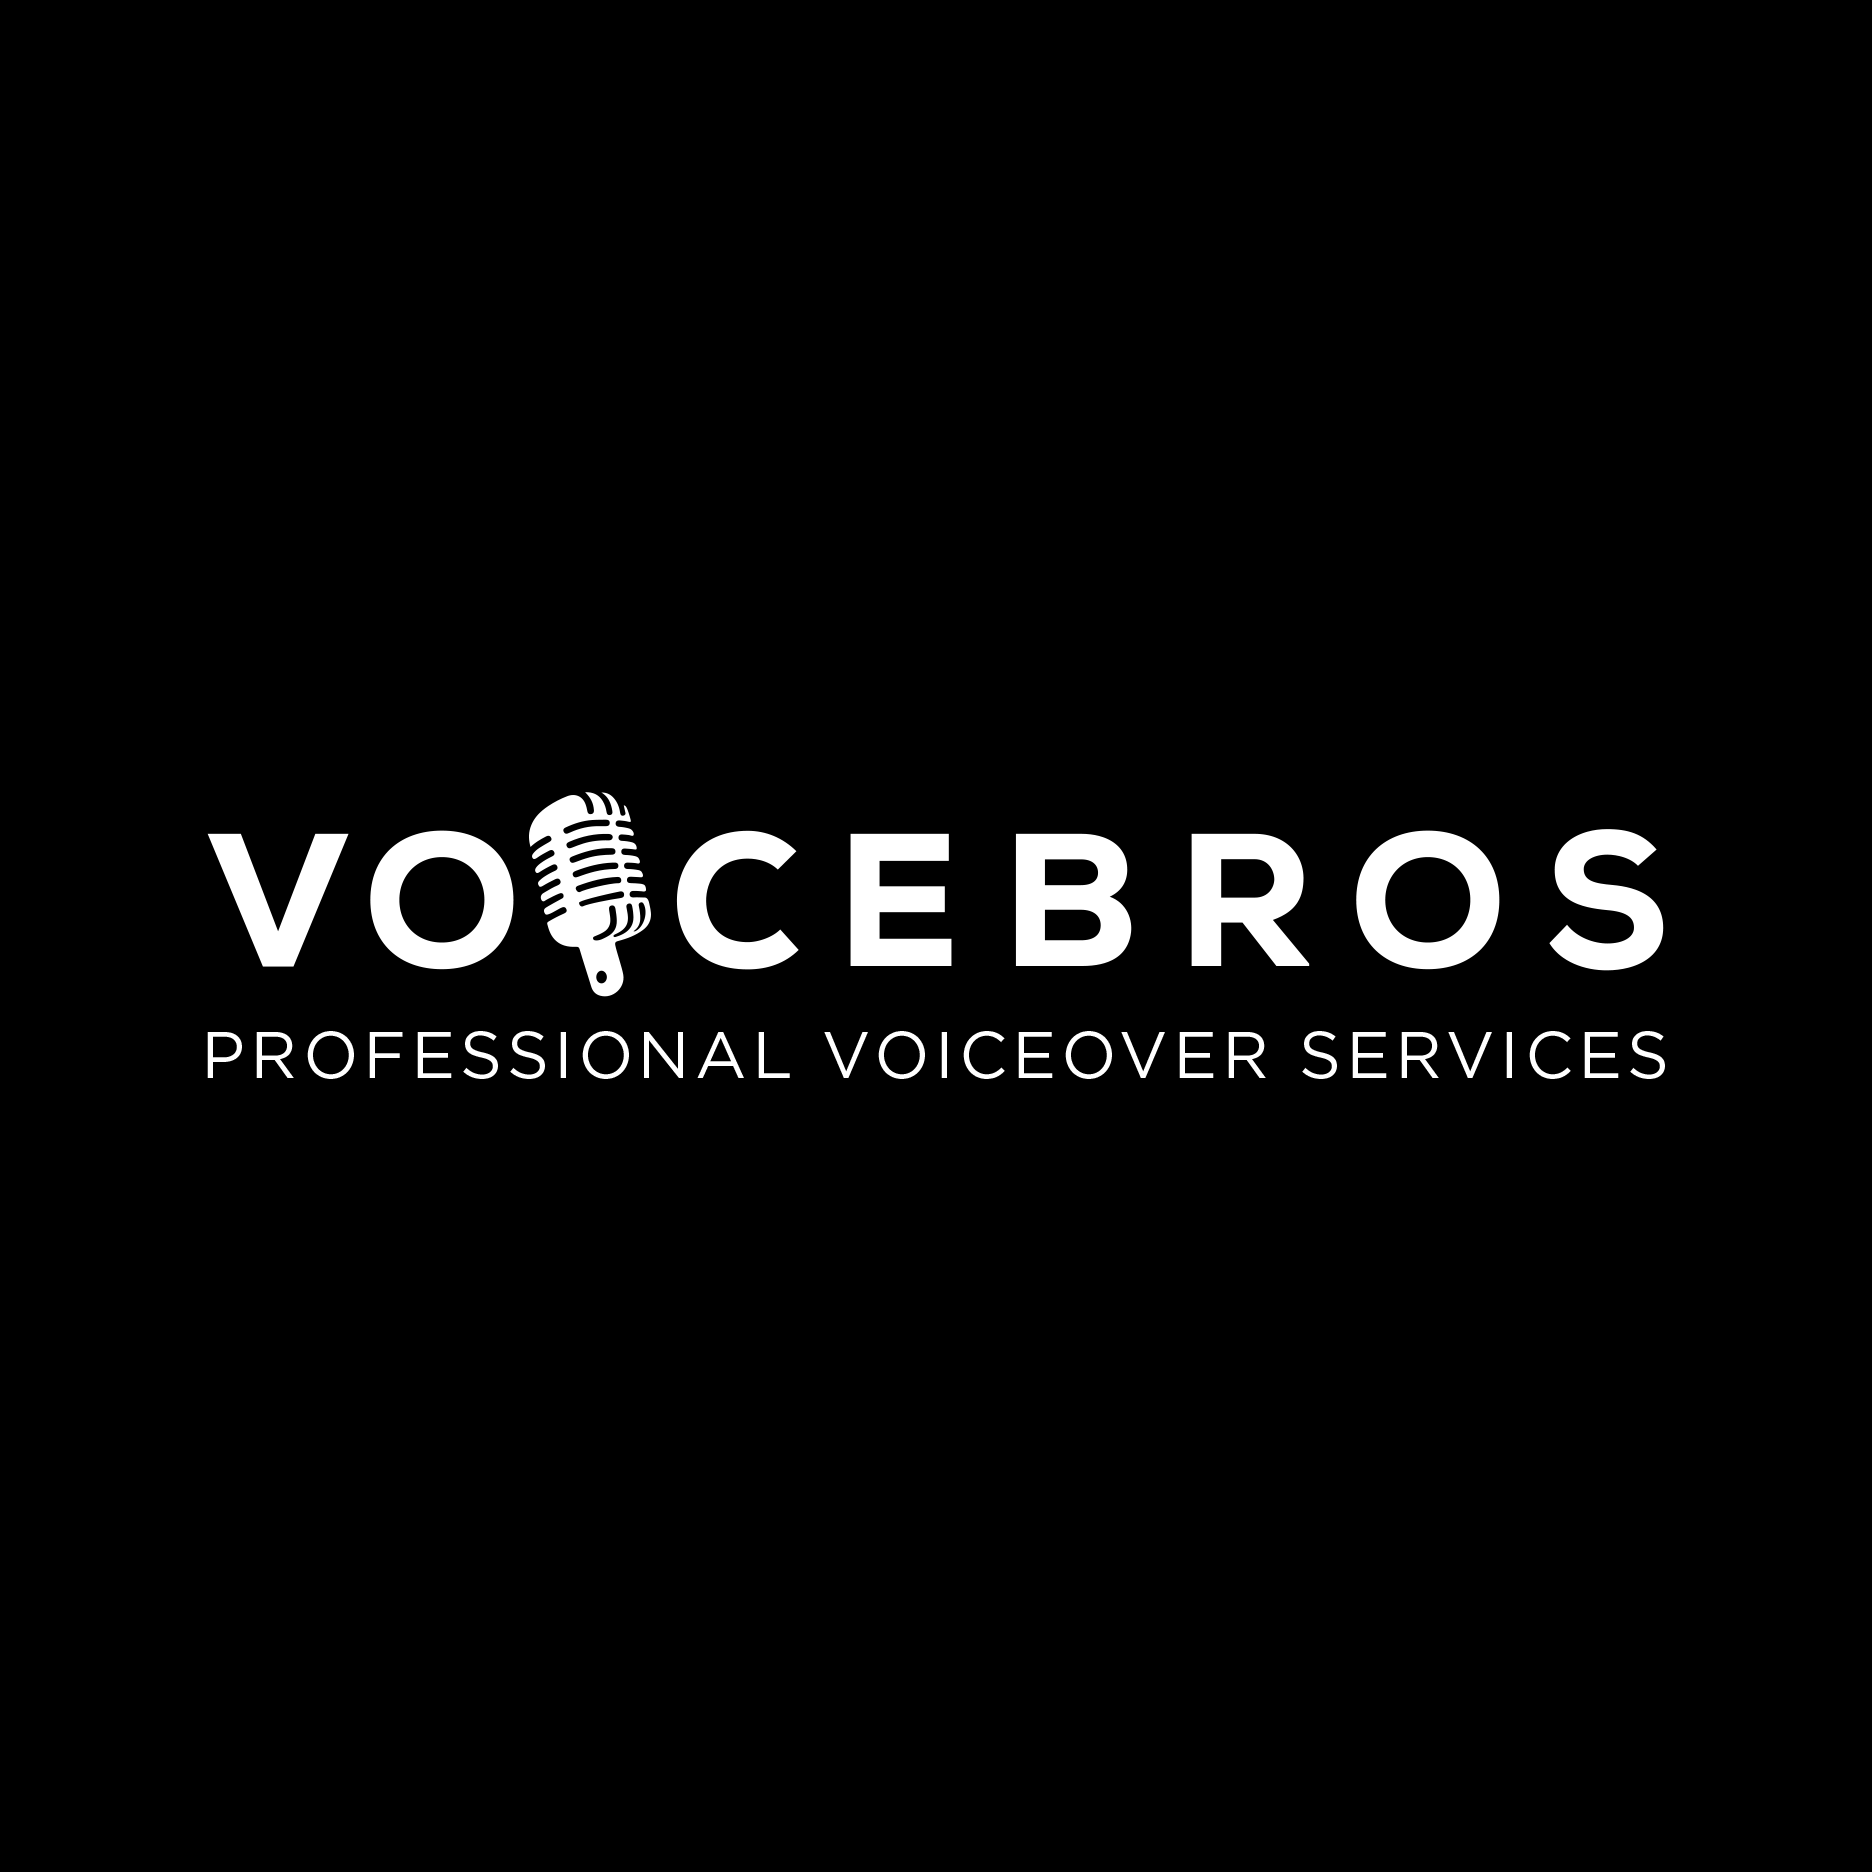 Fiona D. is a voice over actor